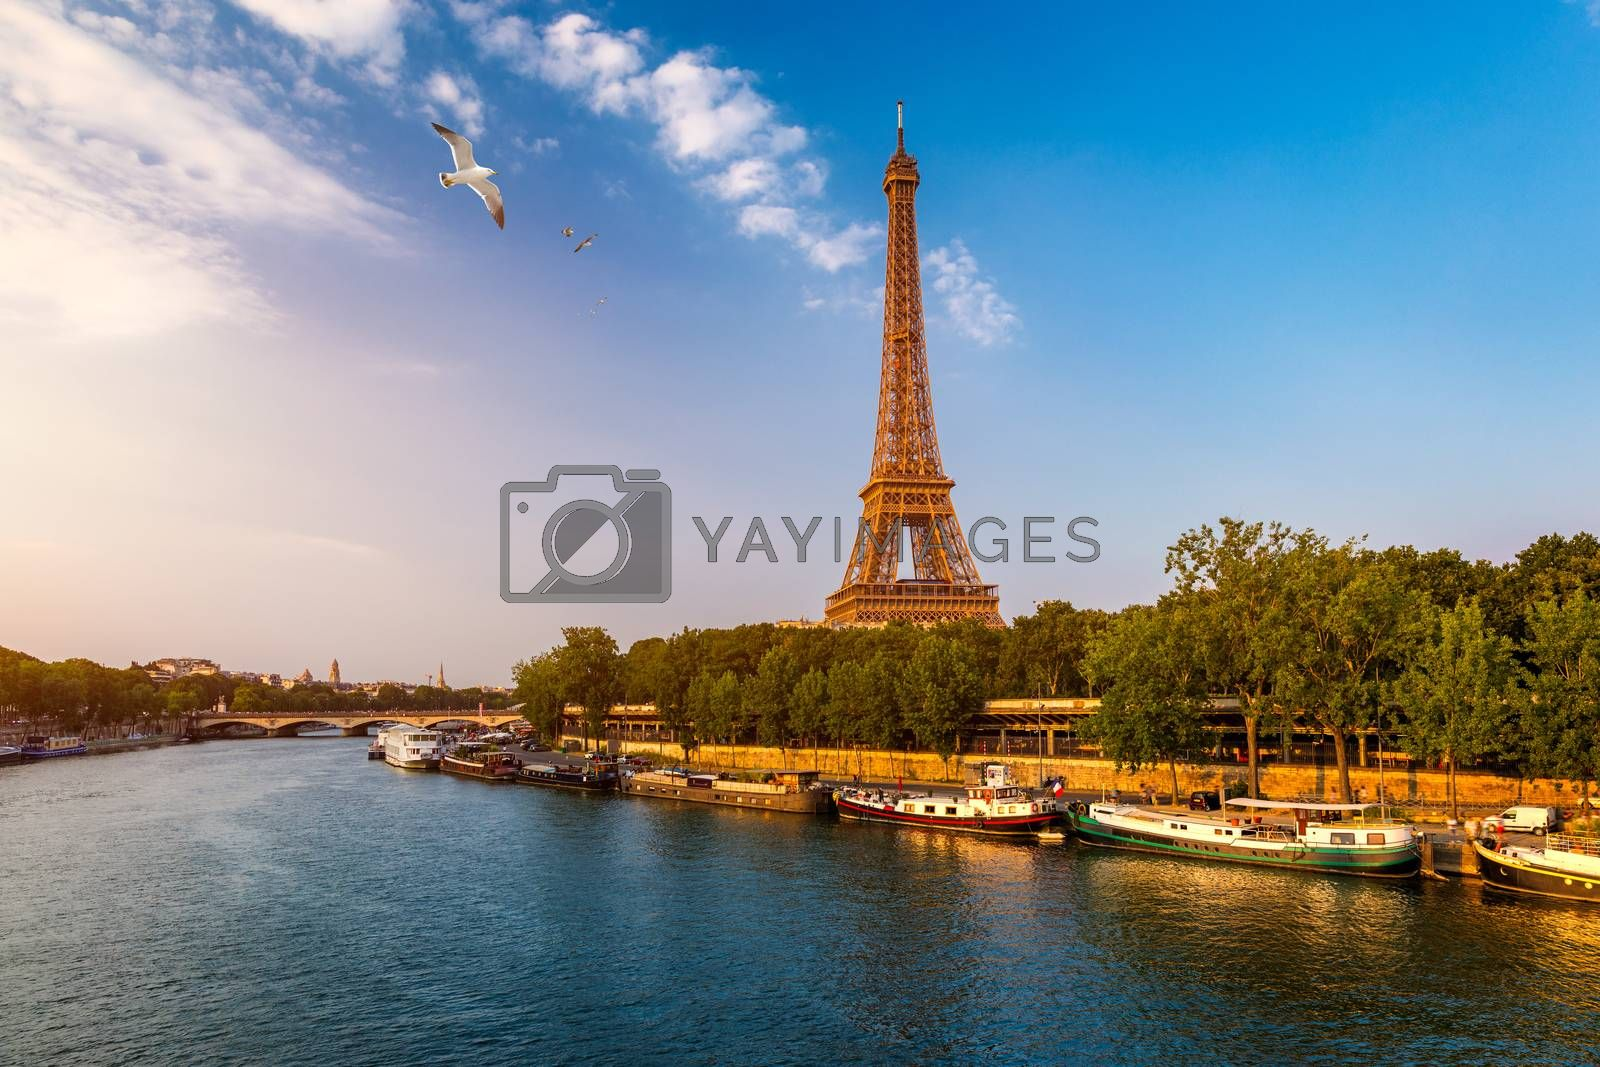 Paris Eiffel Tower and river Seine at sunset in Paris, France. Eiffel Tower is one of the most iconic landmarks of Paris. Eiffel tower in summer, Paris, France. The Eiffel Tower in Paris, France.